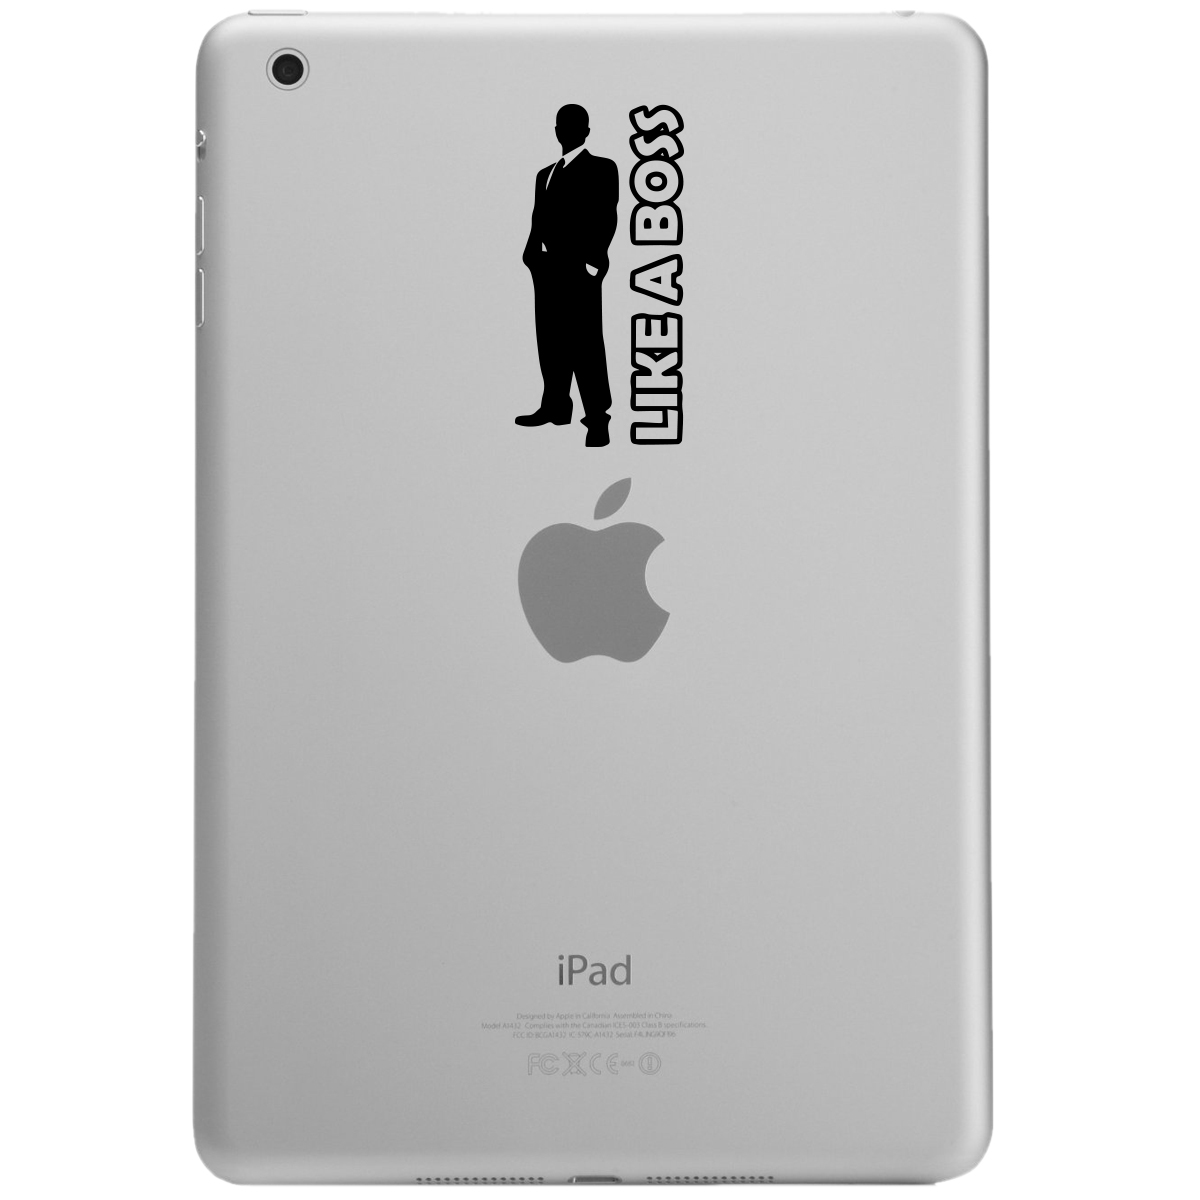 Like a Boss Guy Silhouette iPad Tablet Vinyl Sticker Decal